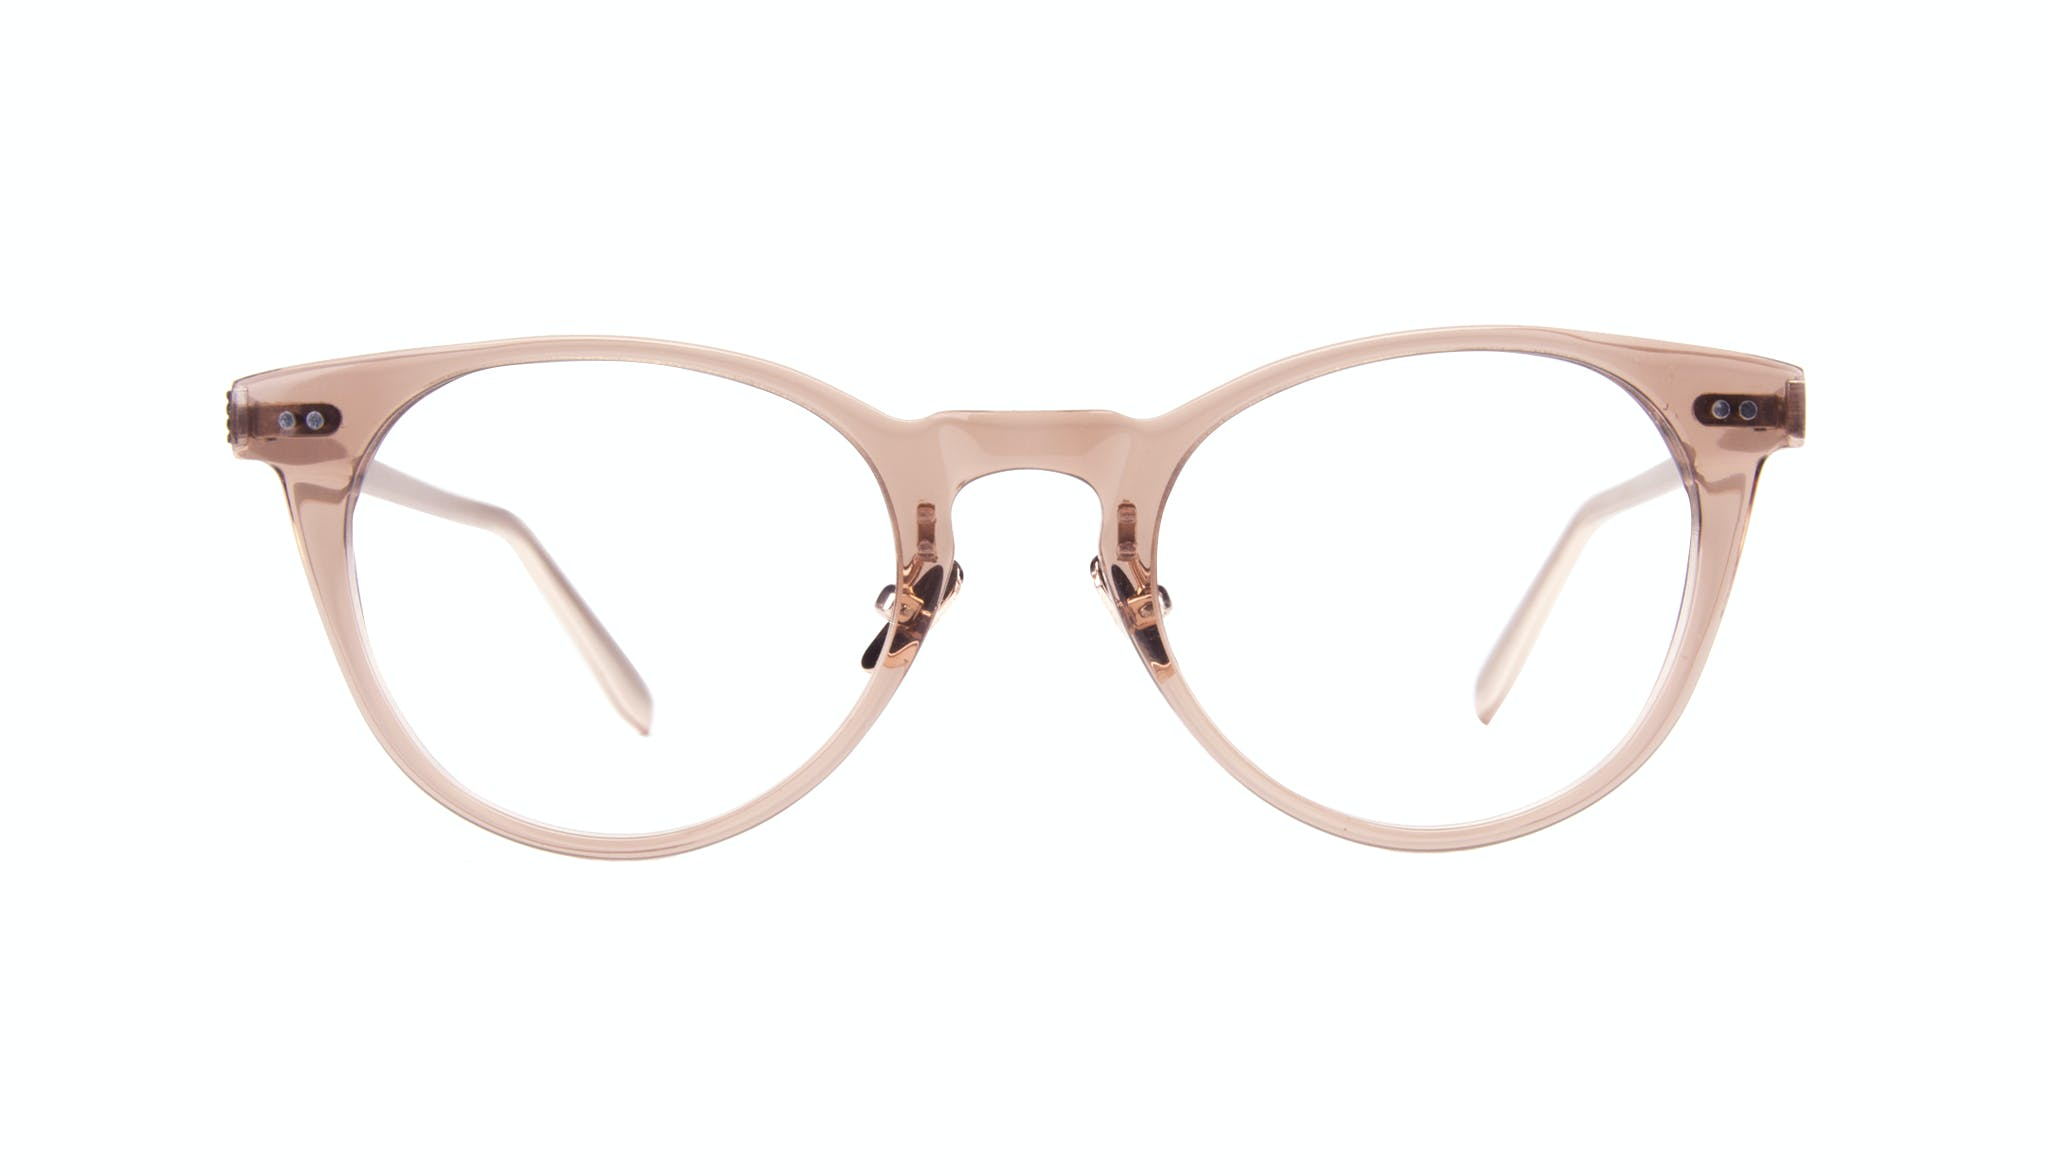 Affordable Fashion Glasses Round Eyeglasses Women Luv Rose